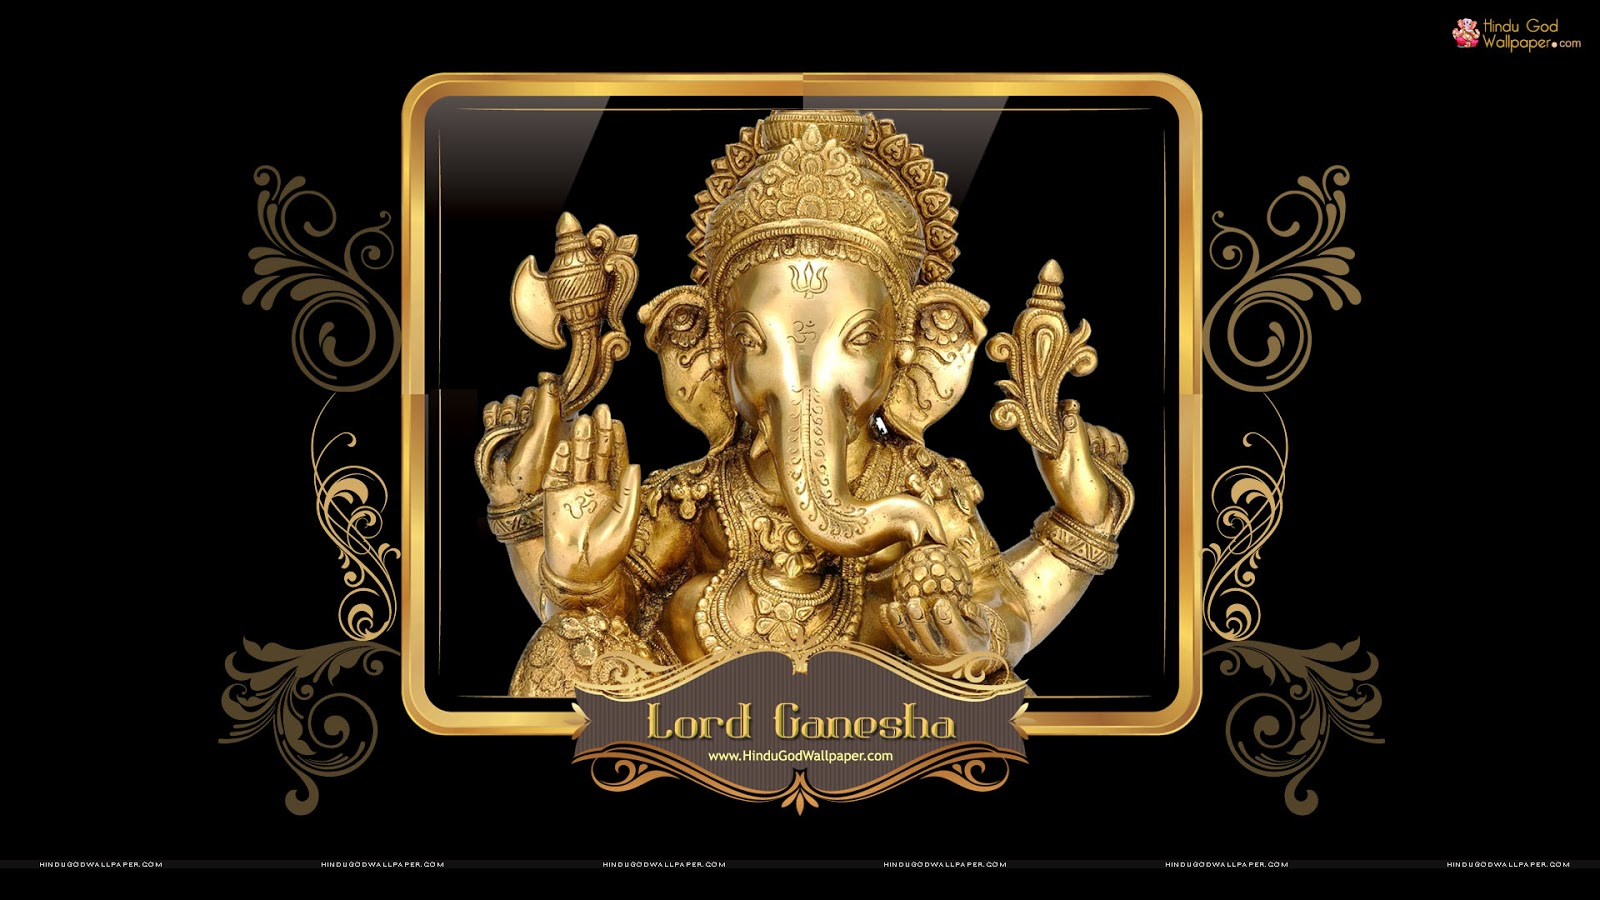 Lord Ganesha Pictures of God